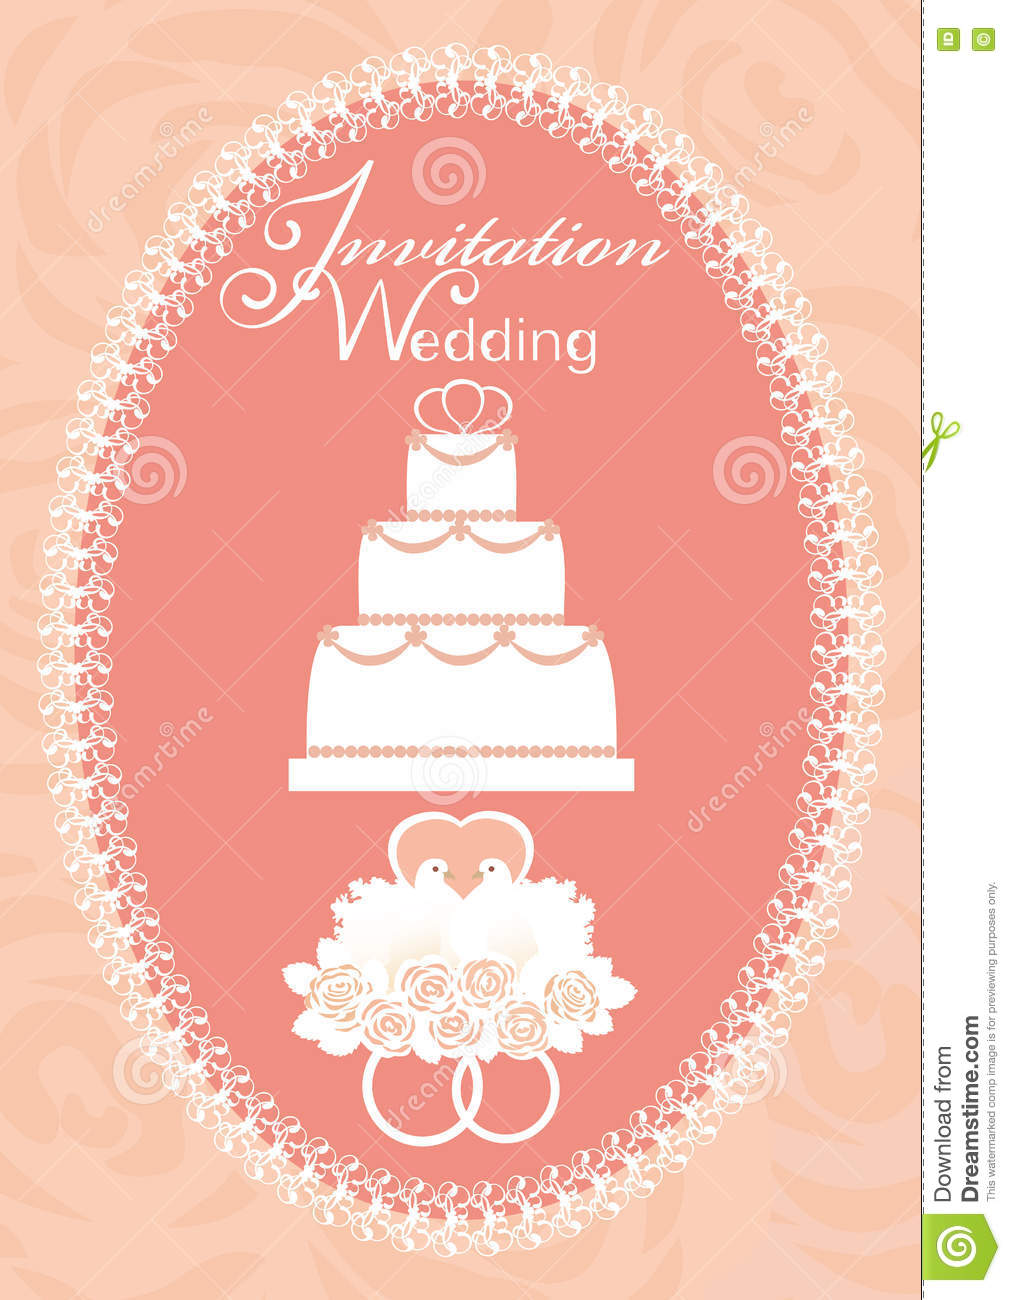 Wedding Invitation With Cake, Doves And Wedding Rings Stock Vector ...